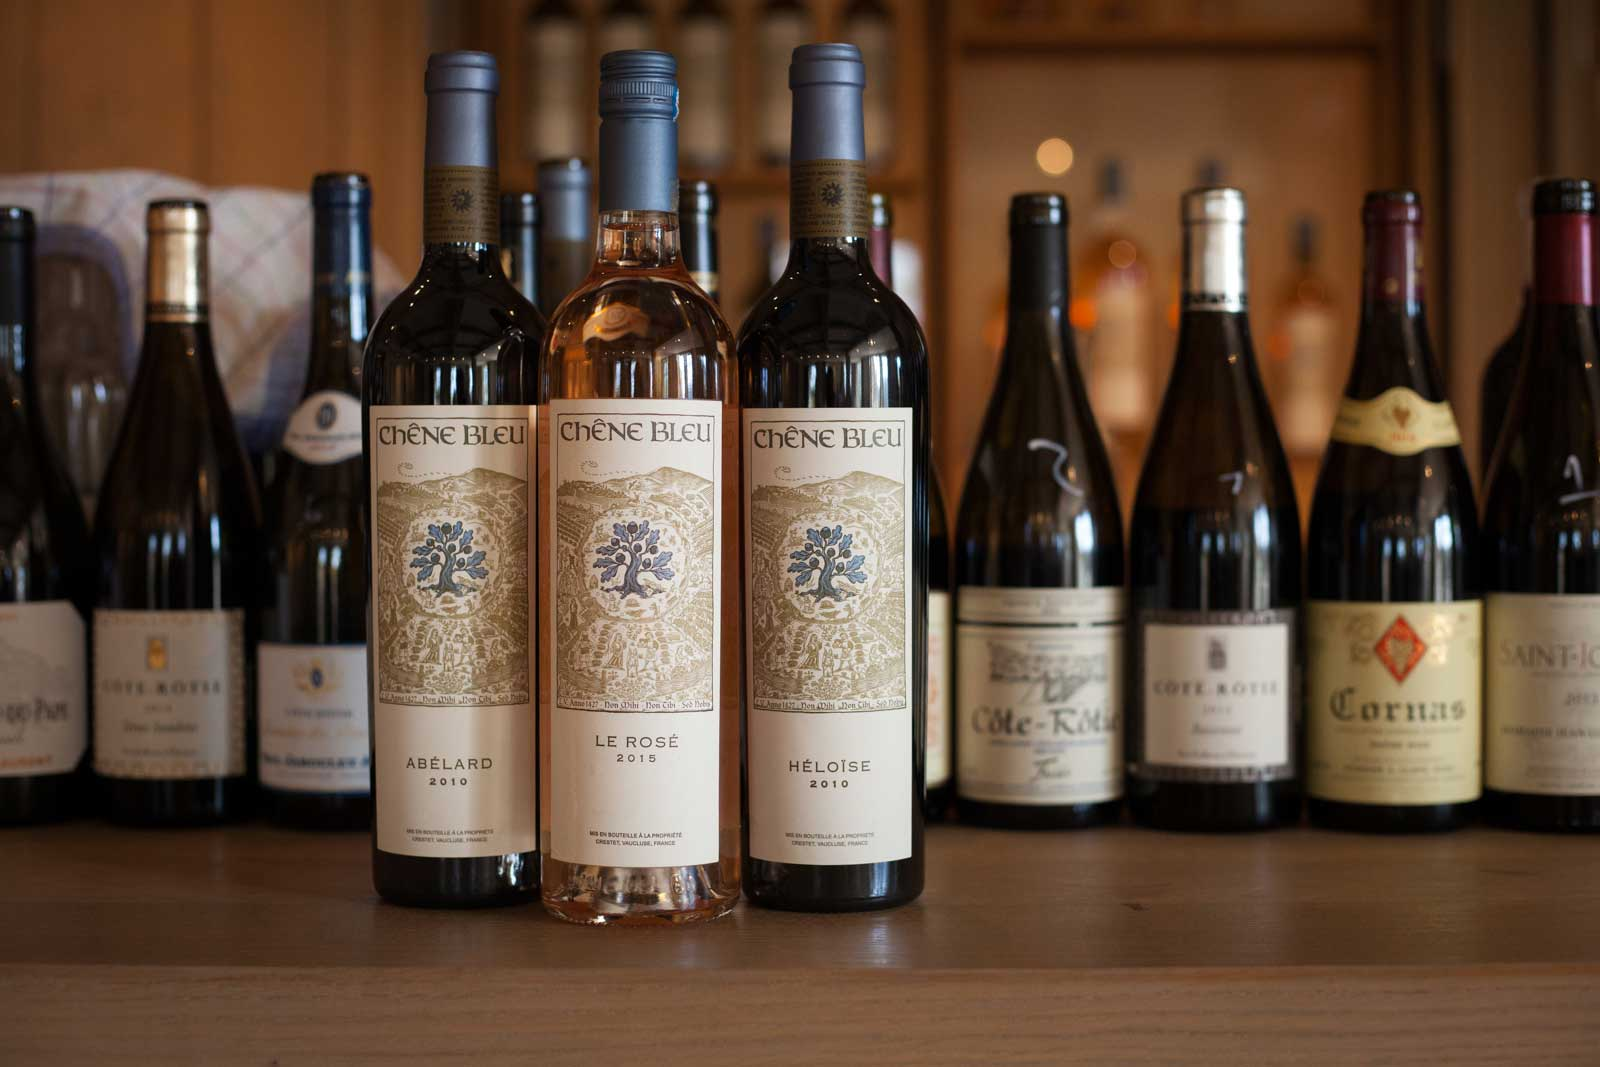 Three of the wines from Chêne Bleu. ©Kevin Day / Opening a Bottle